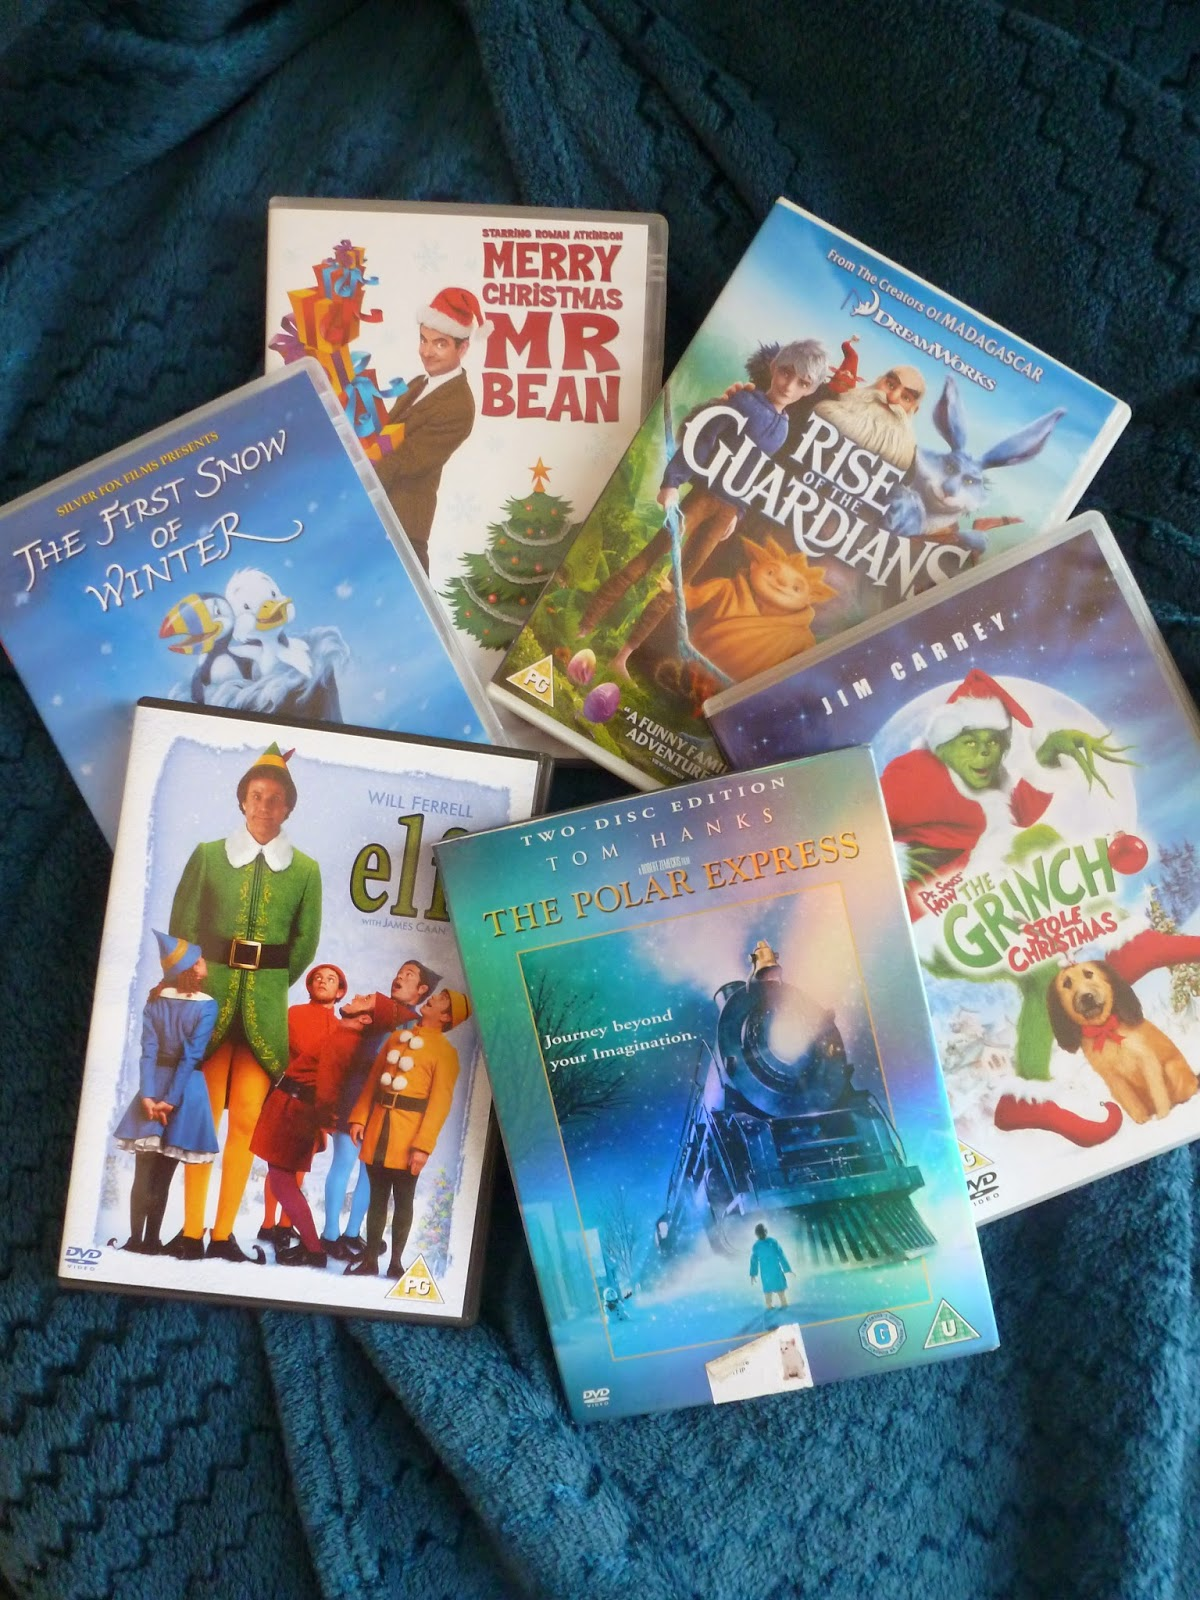 Christmas films. Merry christmas mr bean. Rise of the guardians. The grinch. The polar express. Elf. The first snow of winter